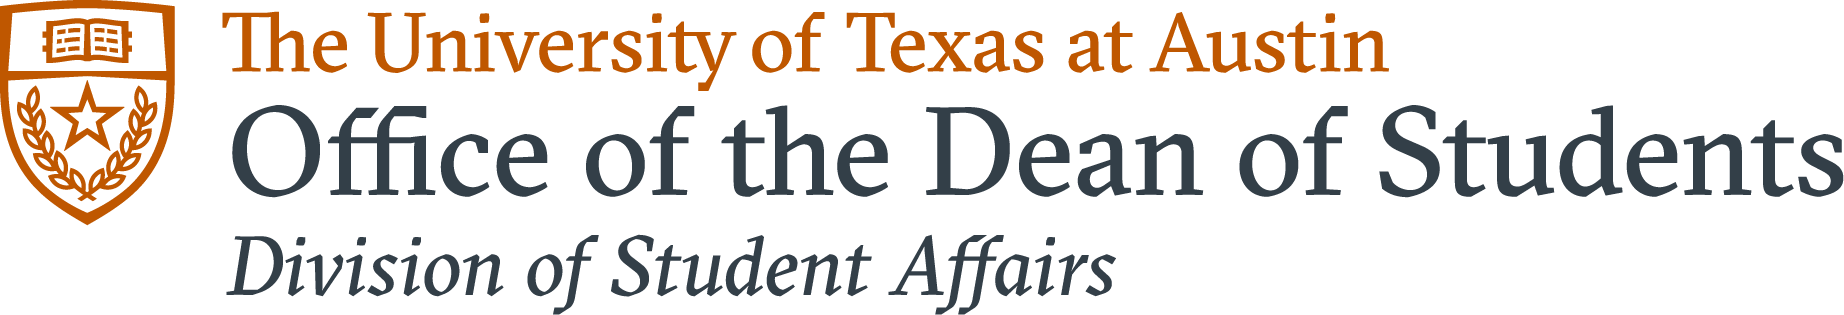 Office of the Dean of Students logo